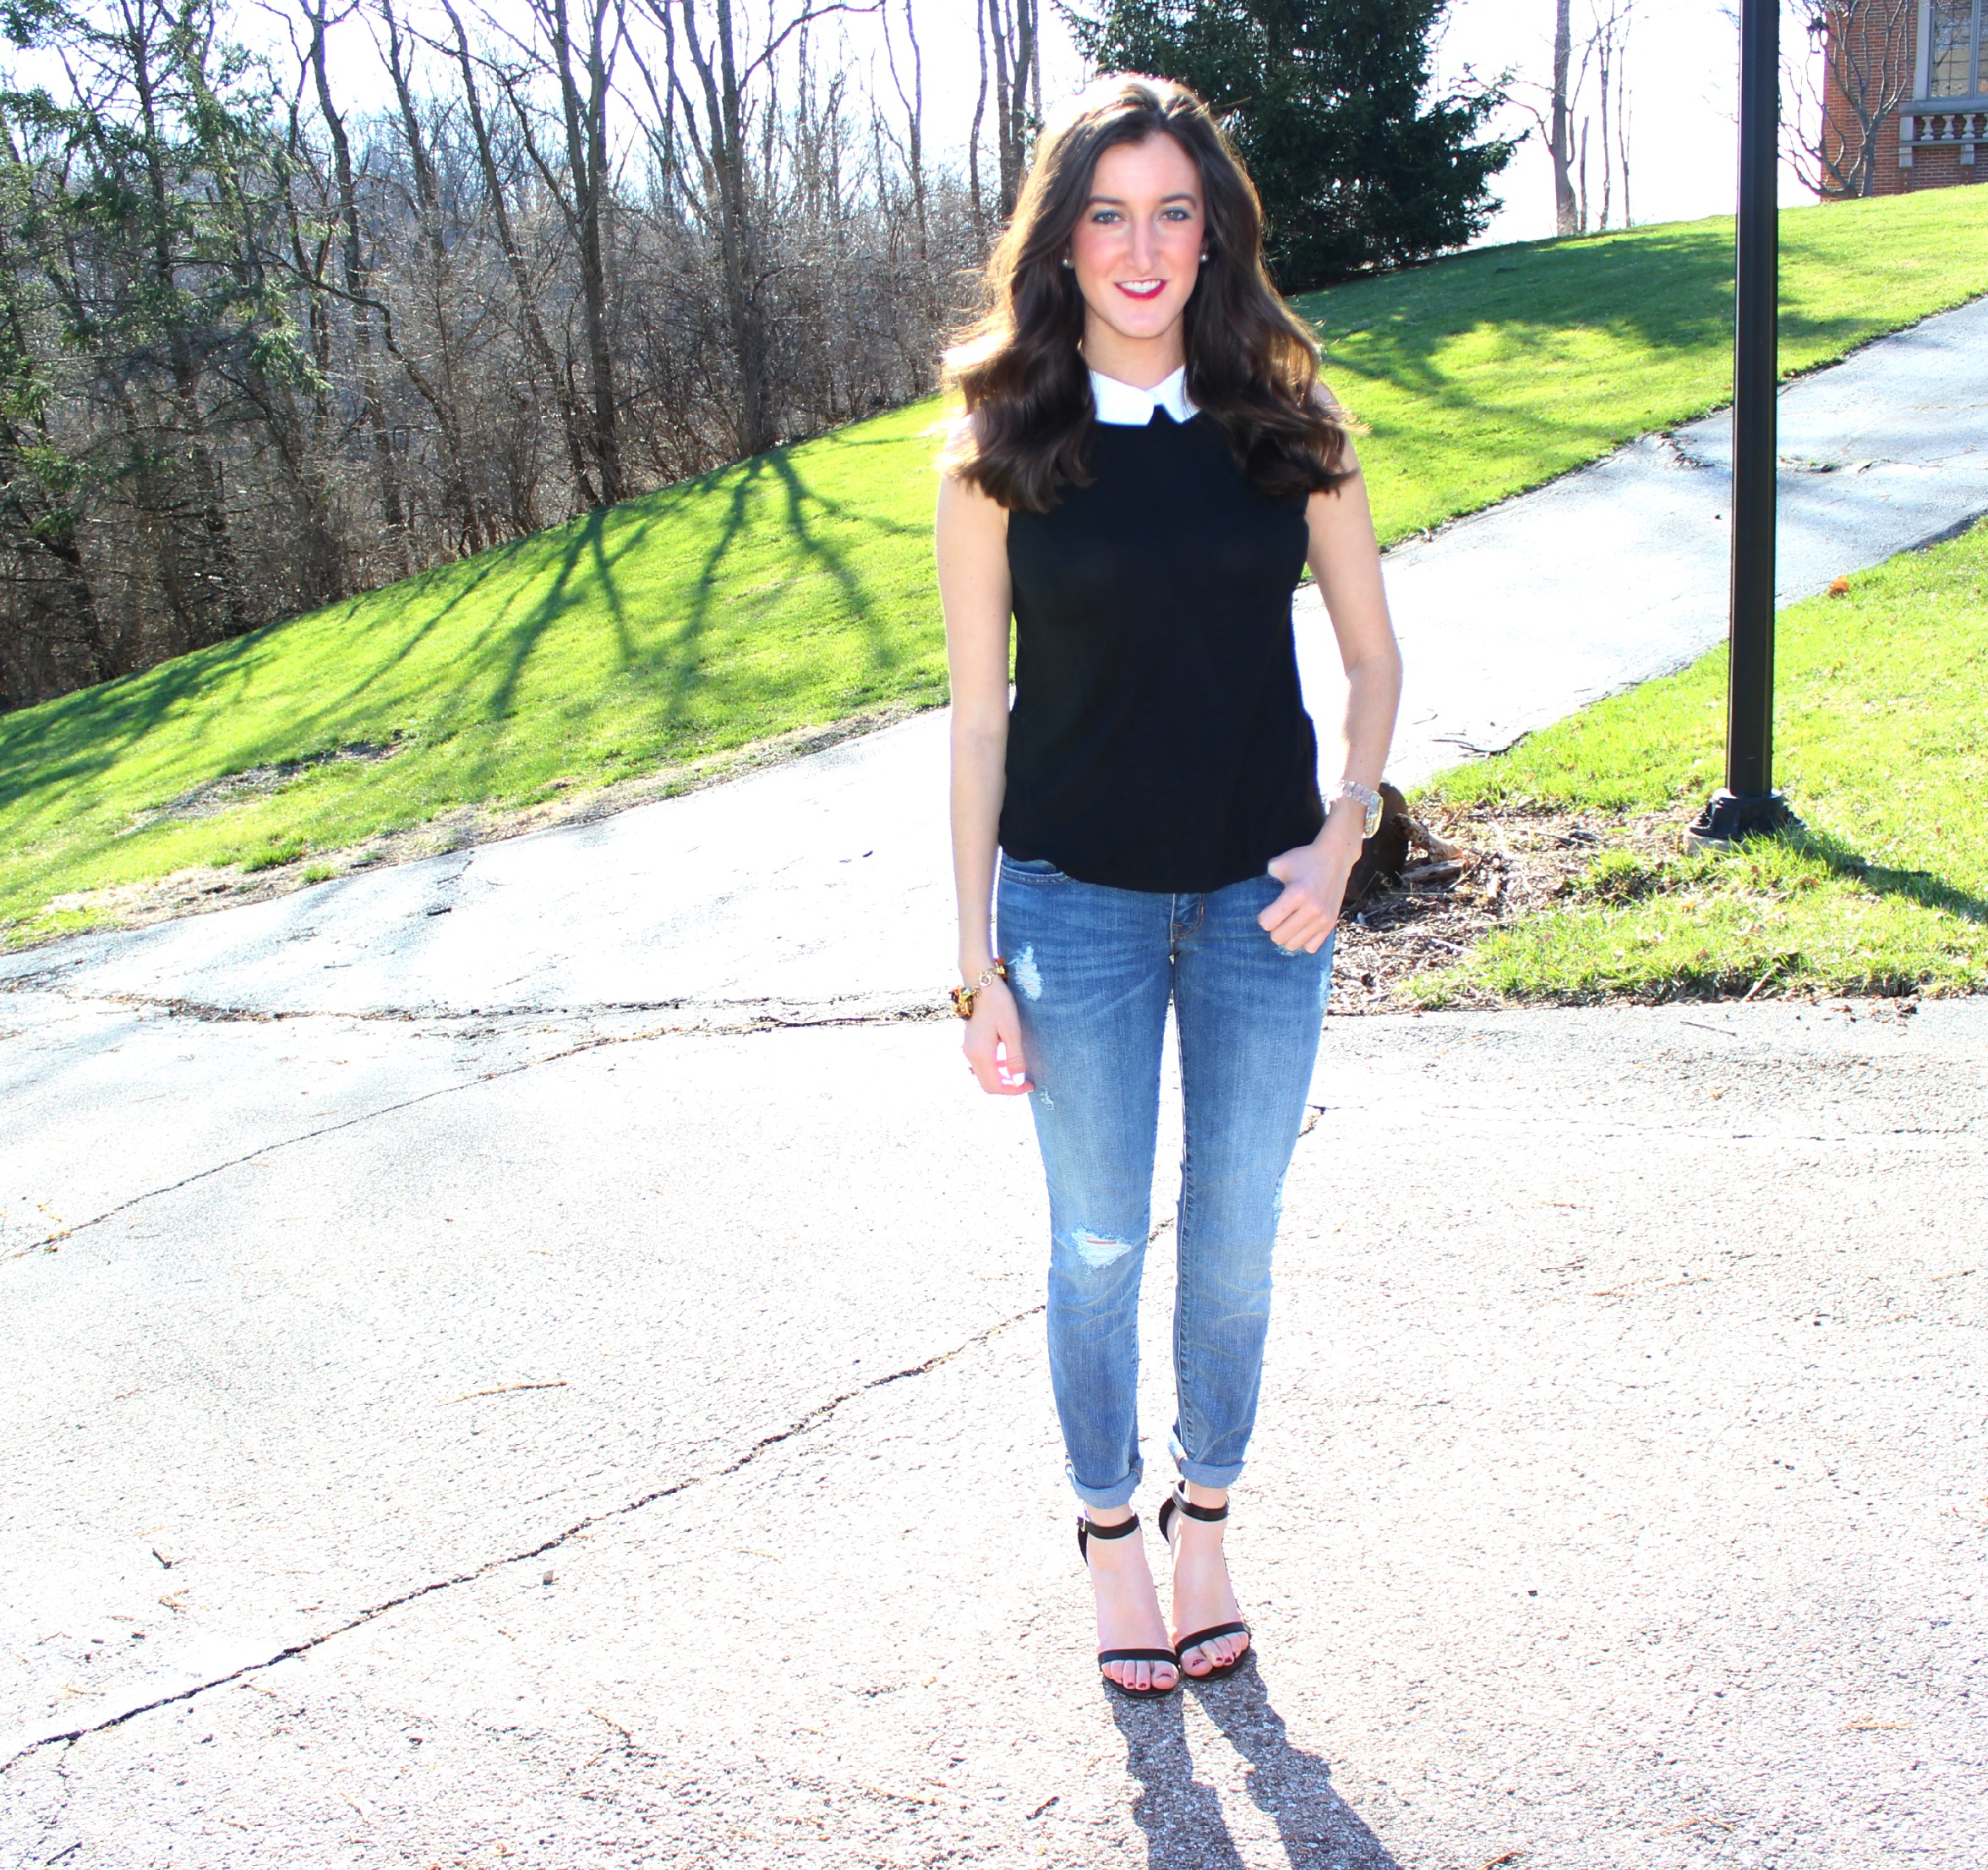 Gap Distressed Jeans with Sleeveless Collared Top